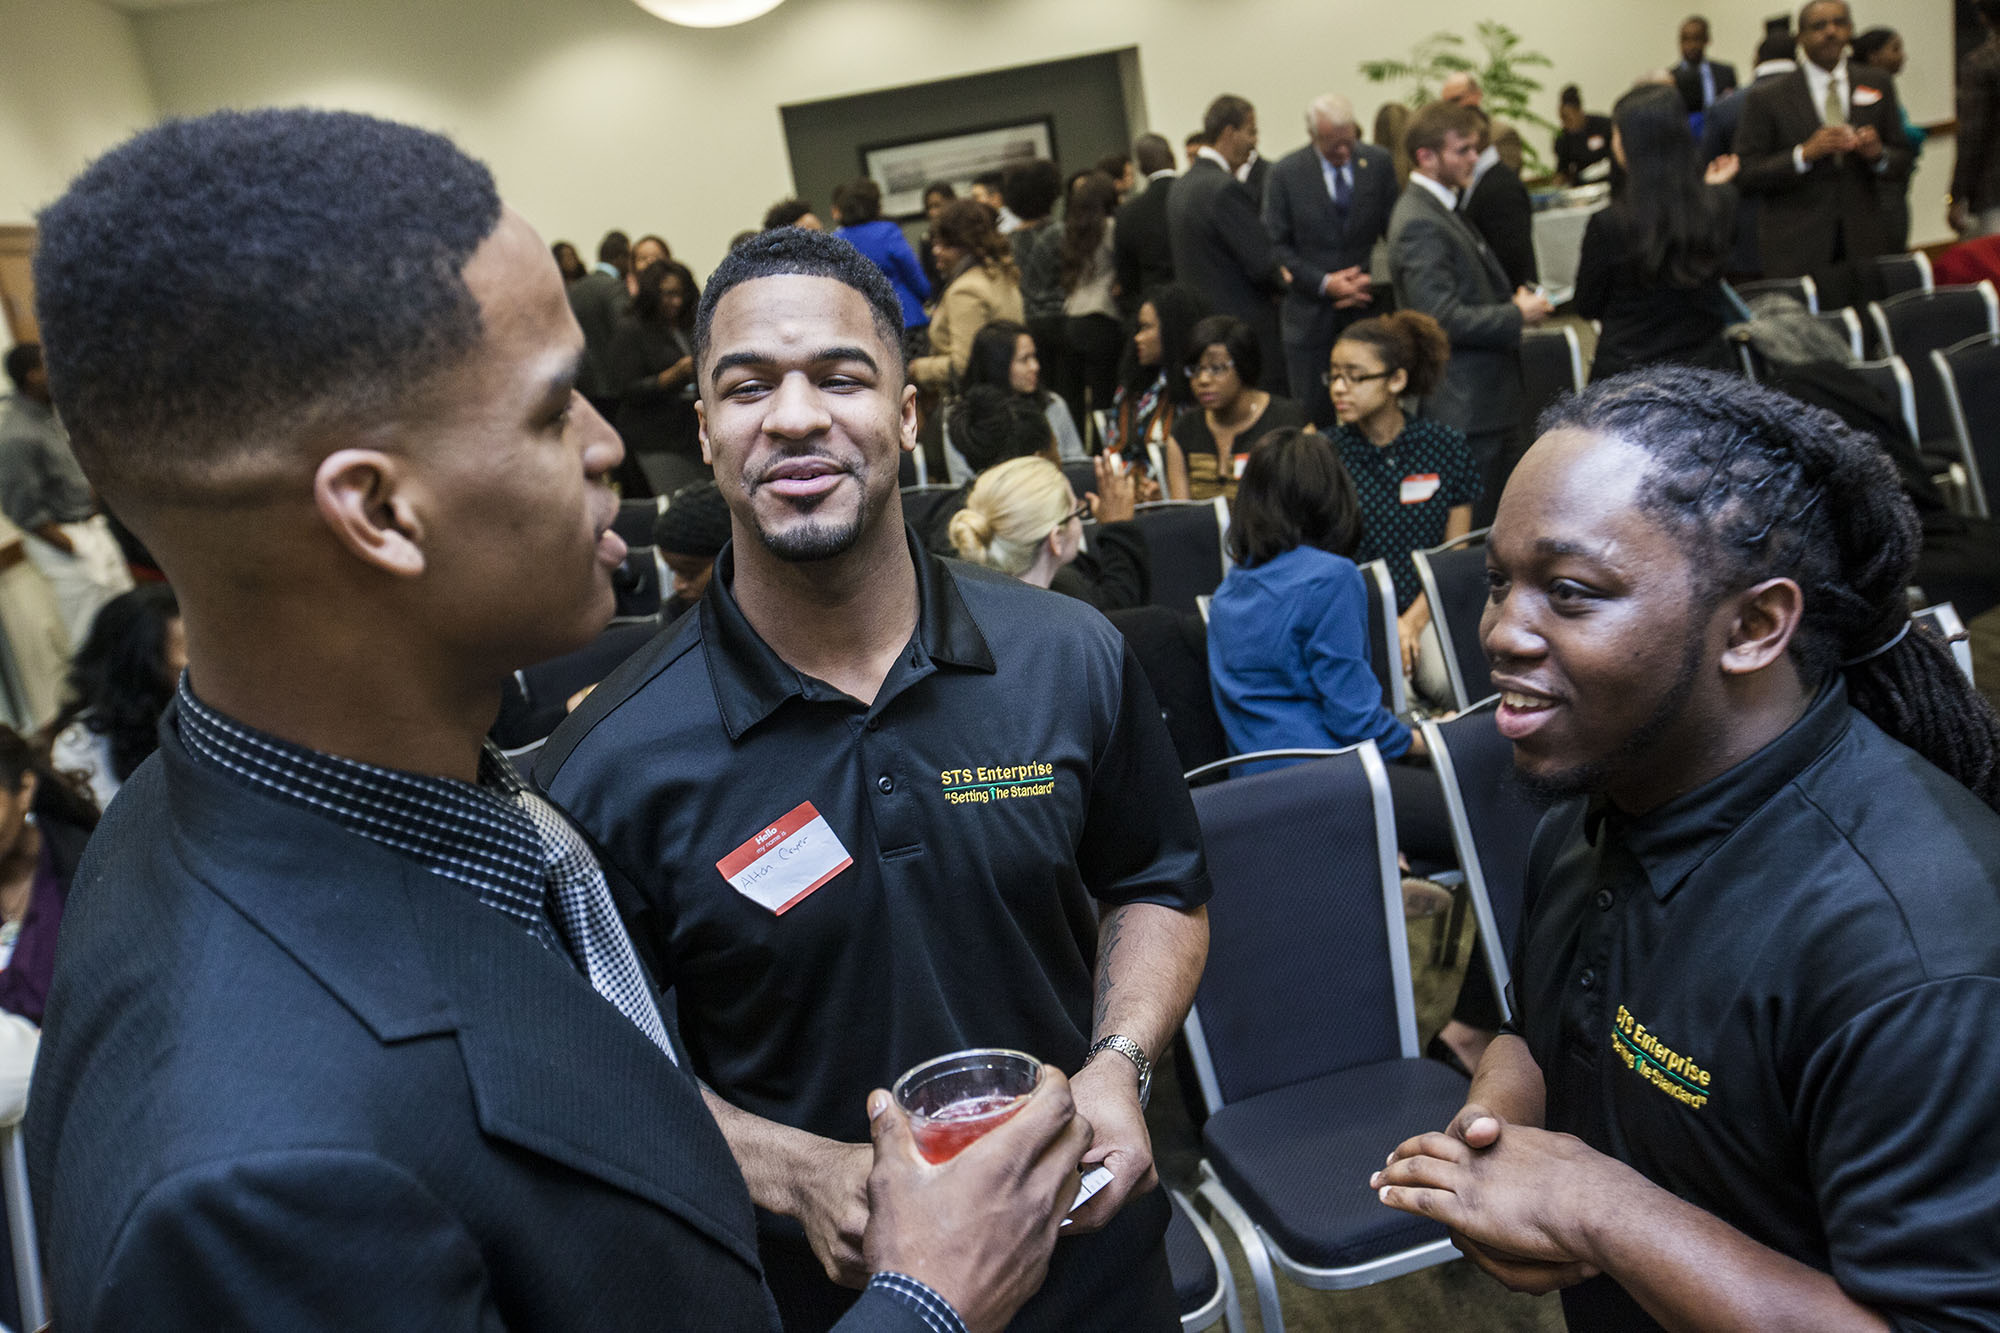 """The crowd mingles while at the """"Bringing out the Leaders"""" event at the University of Memphis on Thursday night. The event is part of Alton Cryer (far left) and Jeremy Calhoun's (not pictured) efforts to help college students network with local government and business officials. (Andrea Morales/Special to the Commercial Appeal)"""